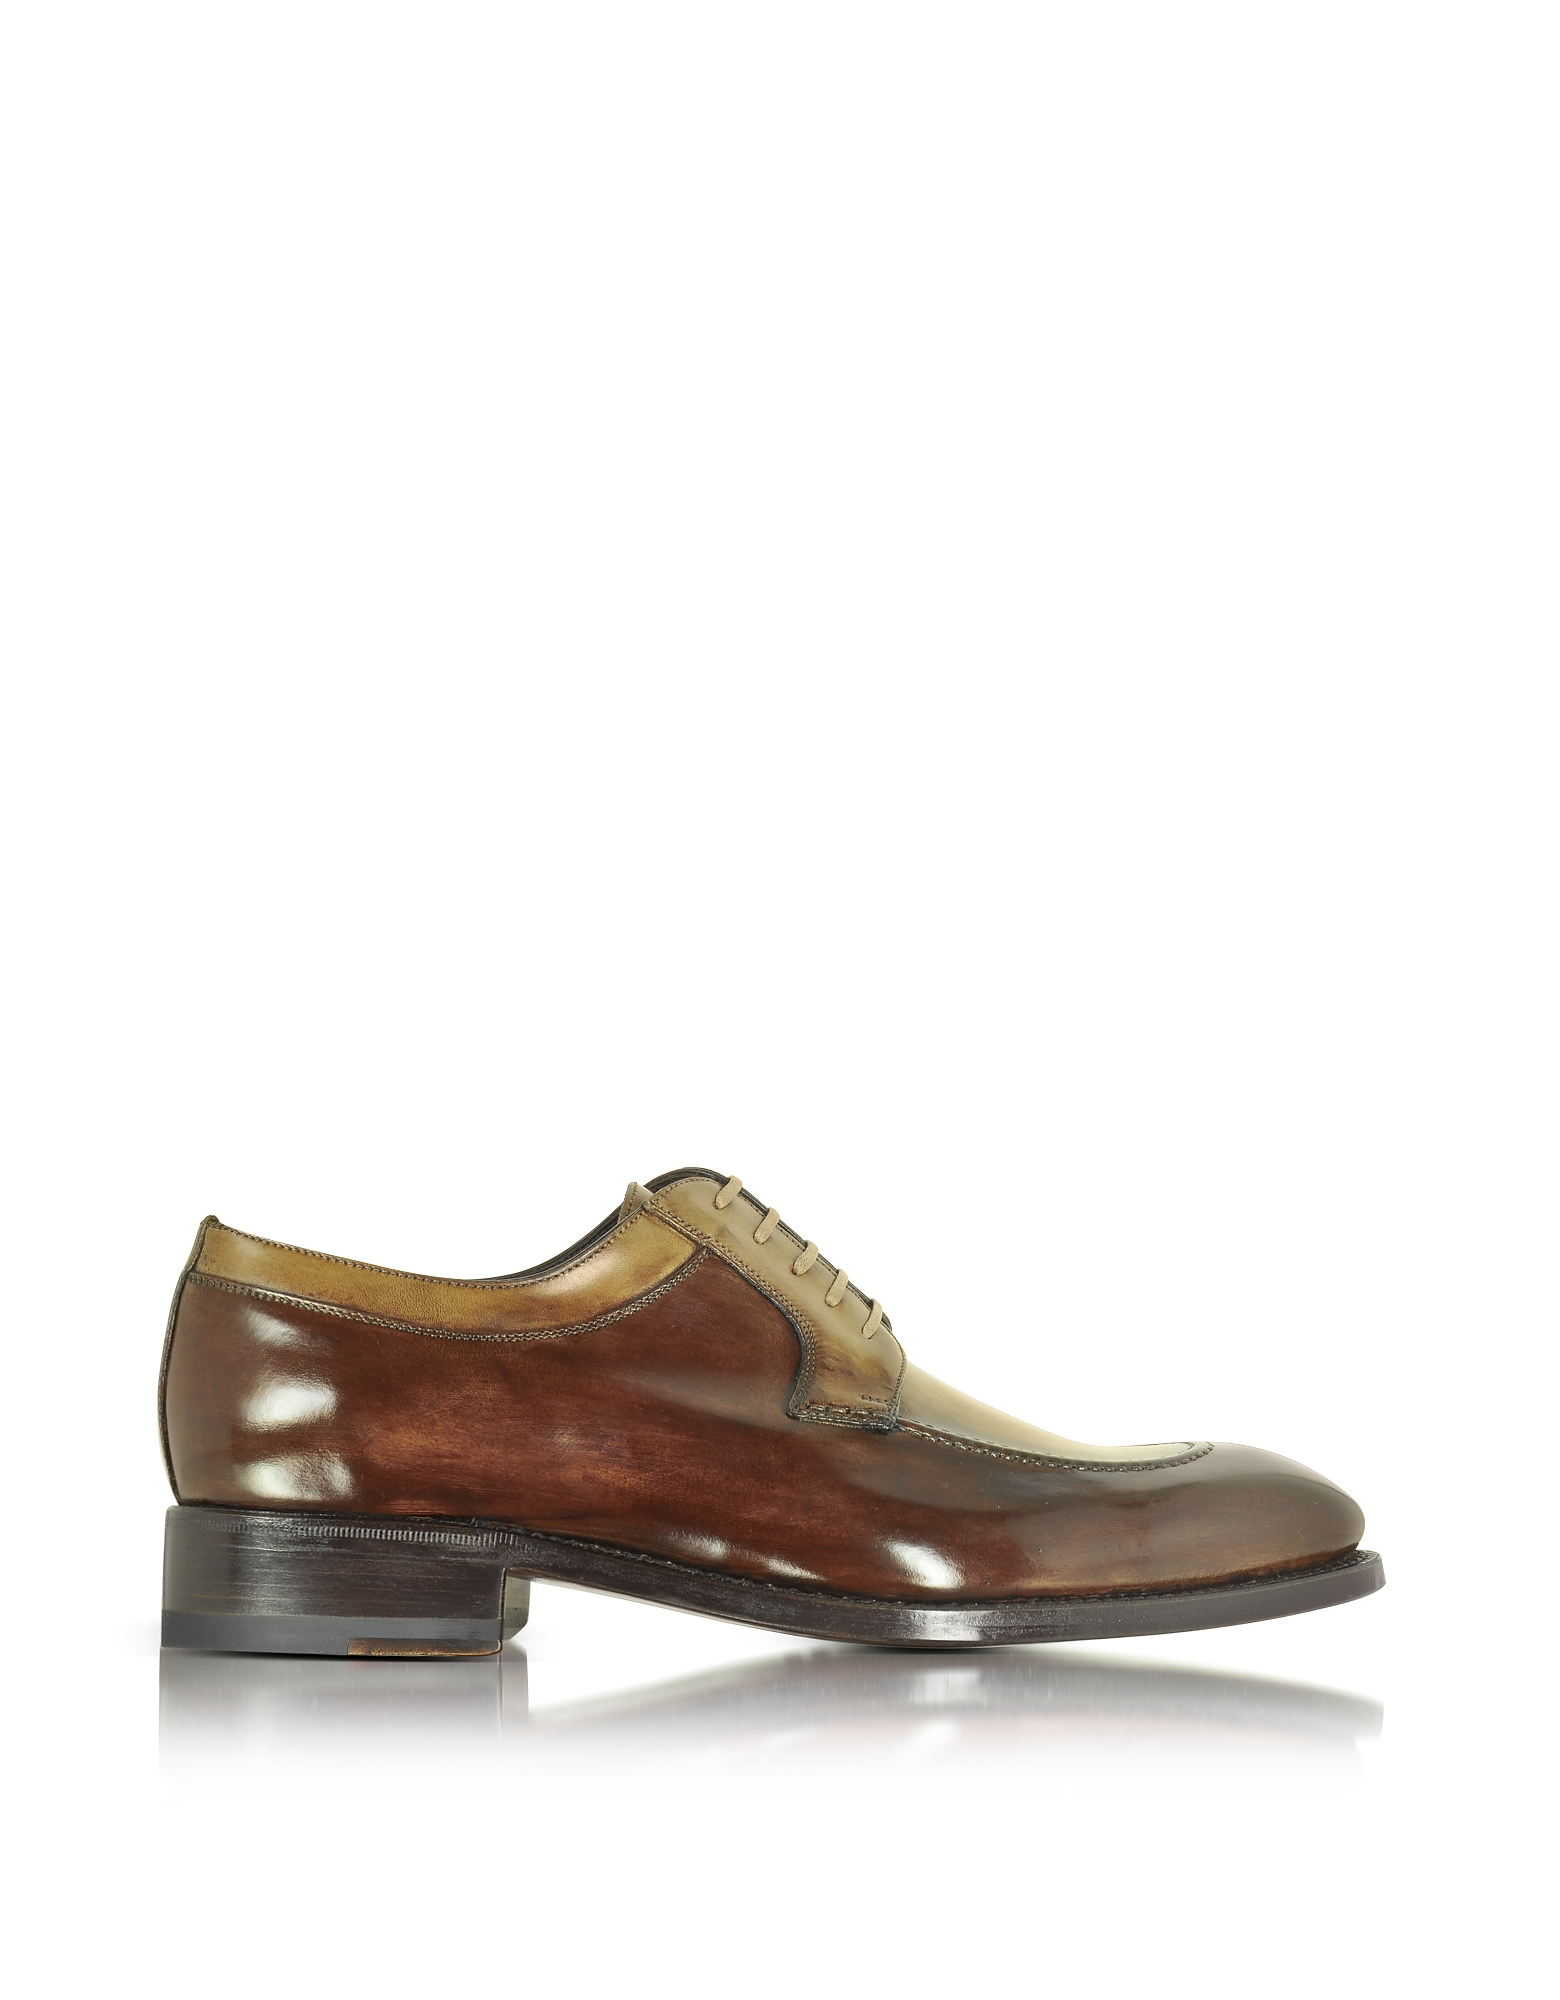 Forzieri Shoes, Italian Handcrafted Two Tone Leather Derby Shoe